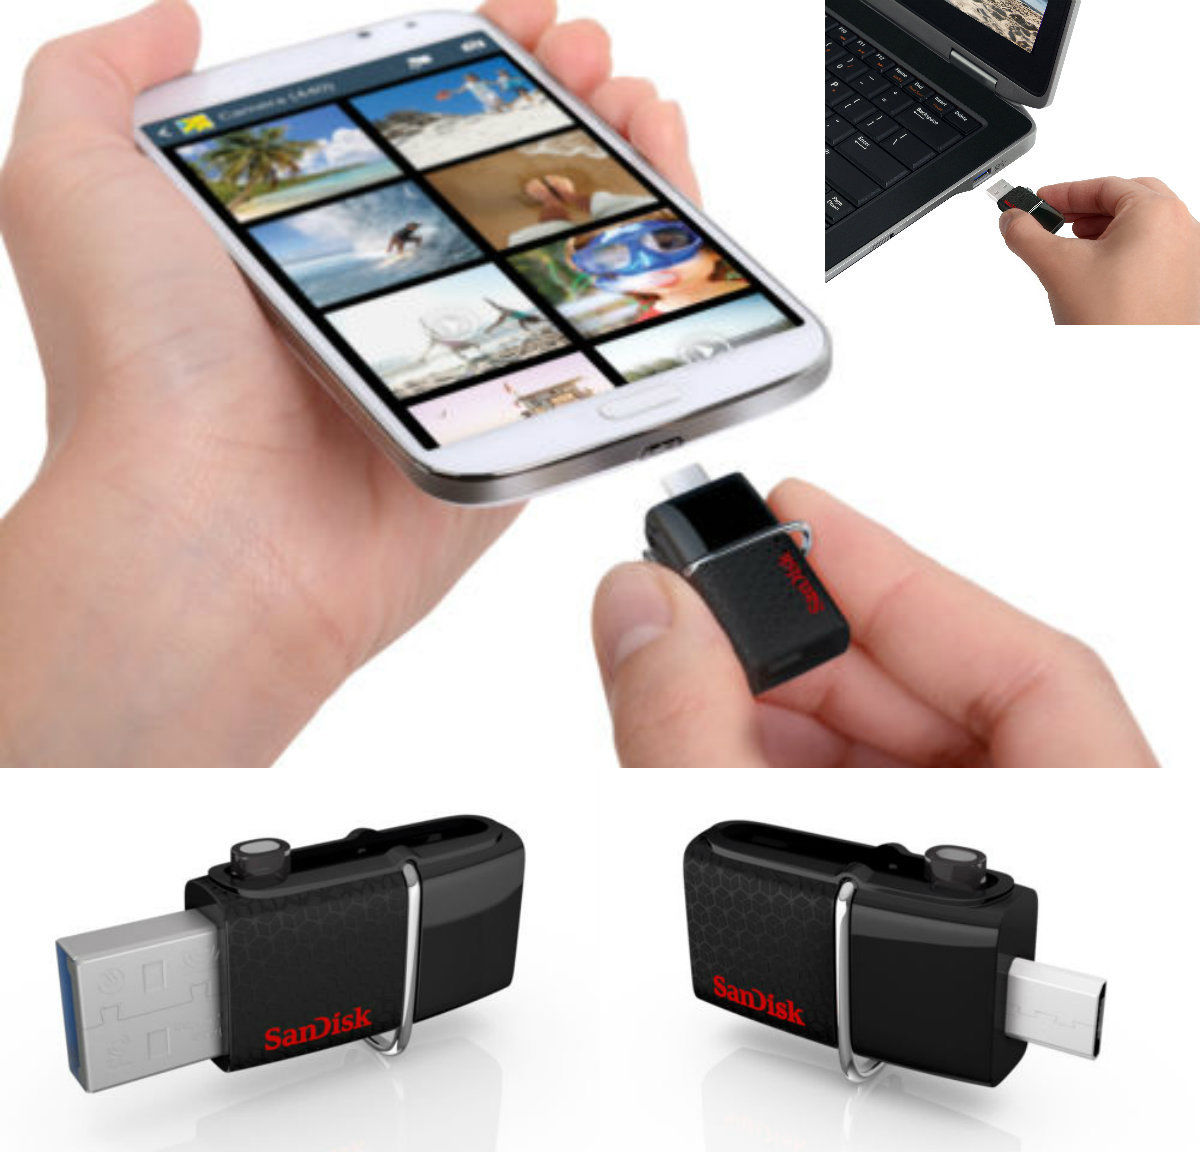 SanDisk 16GB Extremely Twin Flash Drive Pen Memory Stick For Android Telephones Tablets